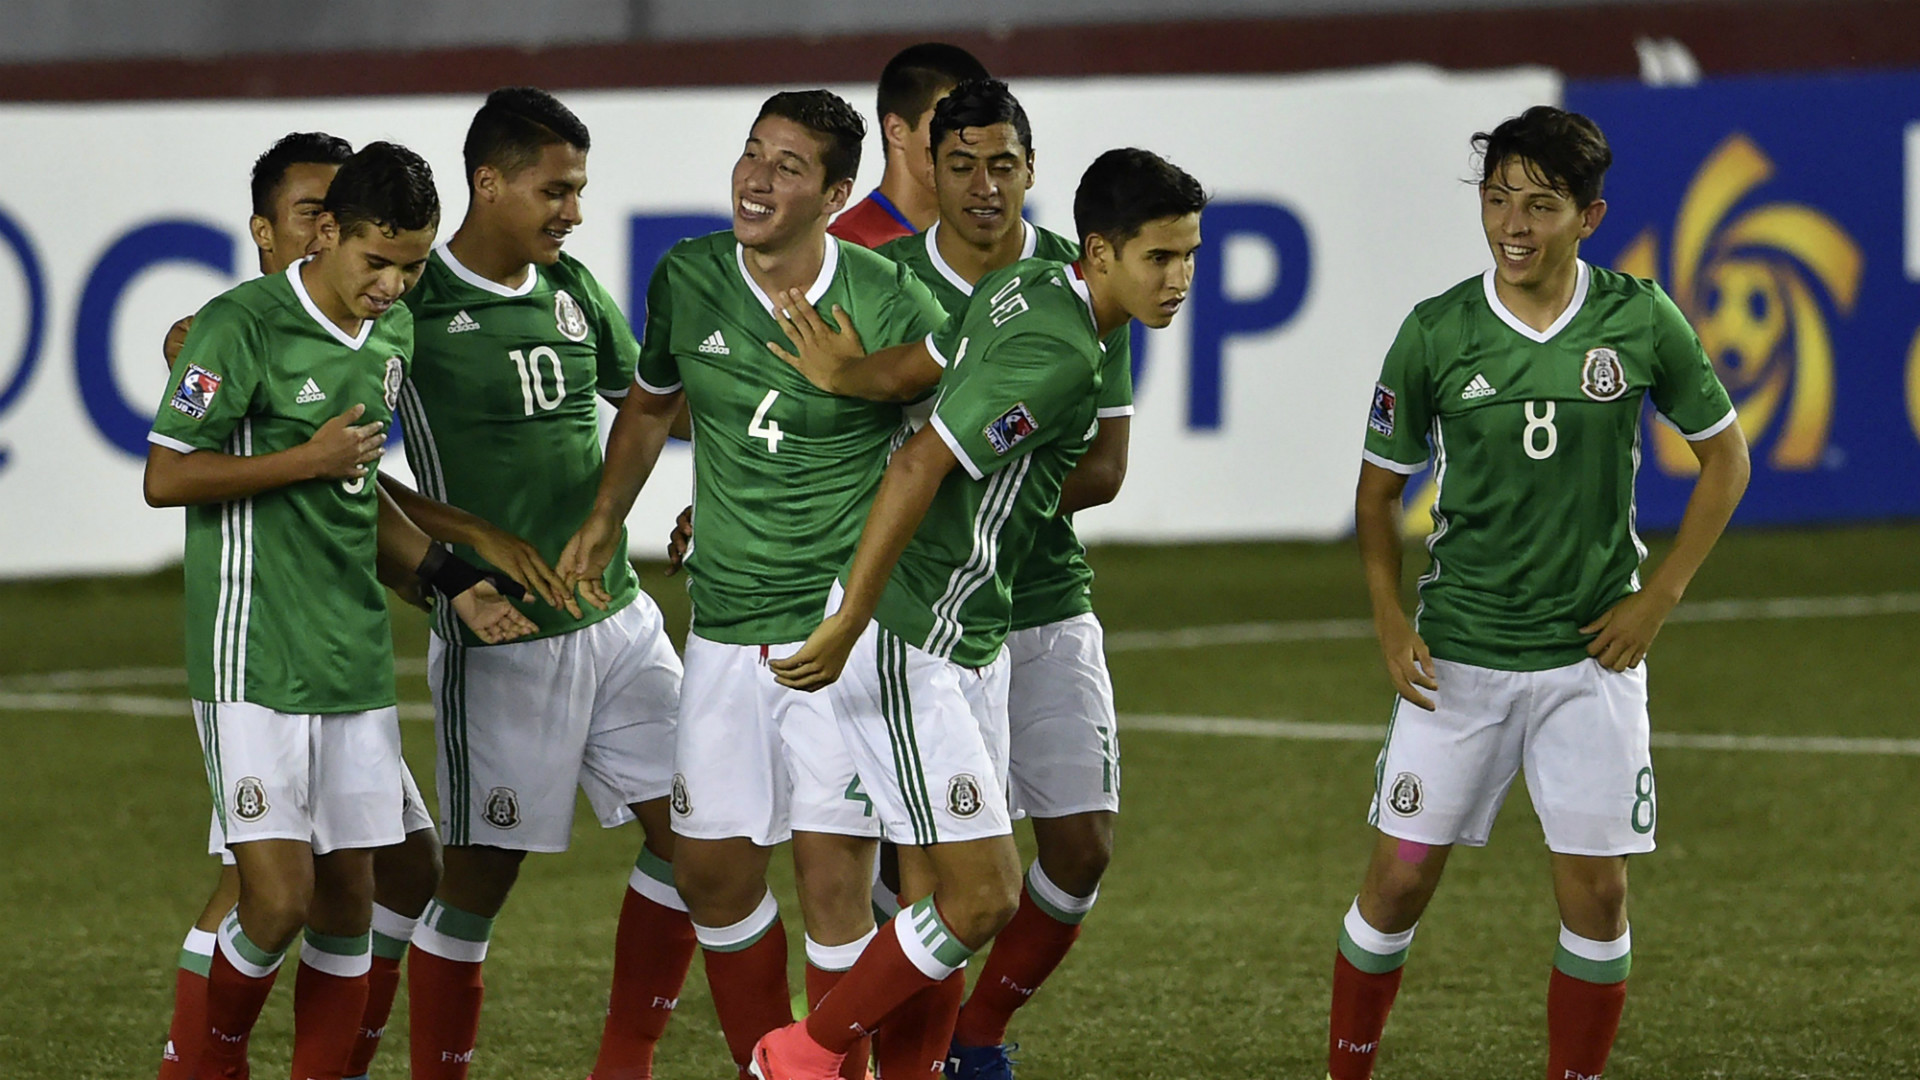 Mexico Soccer Team Wallpaper 2018 69 Pictures